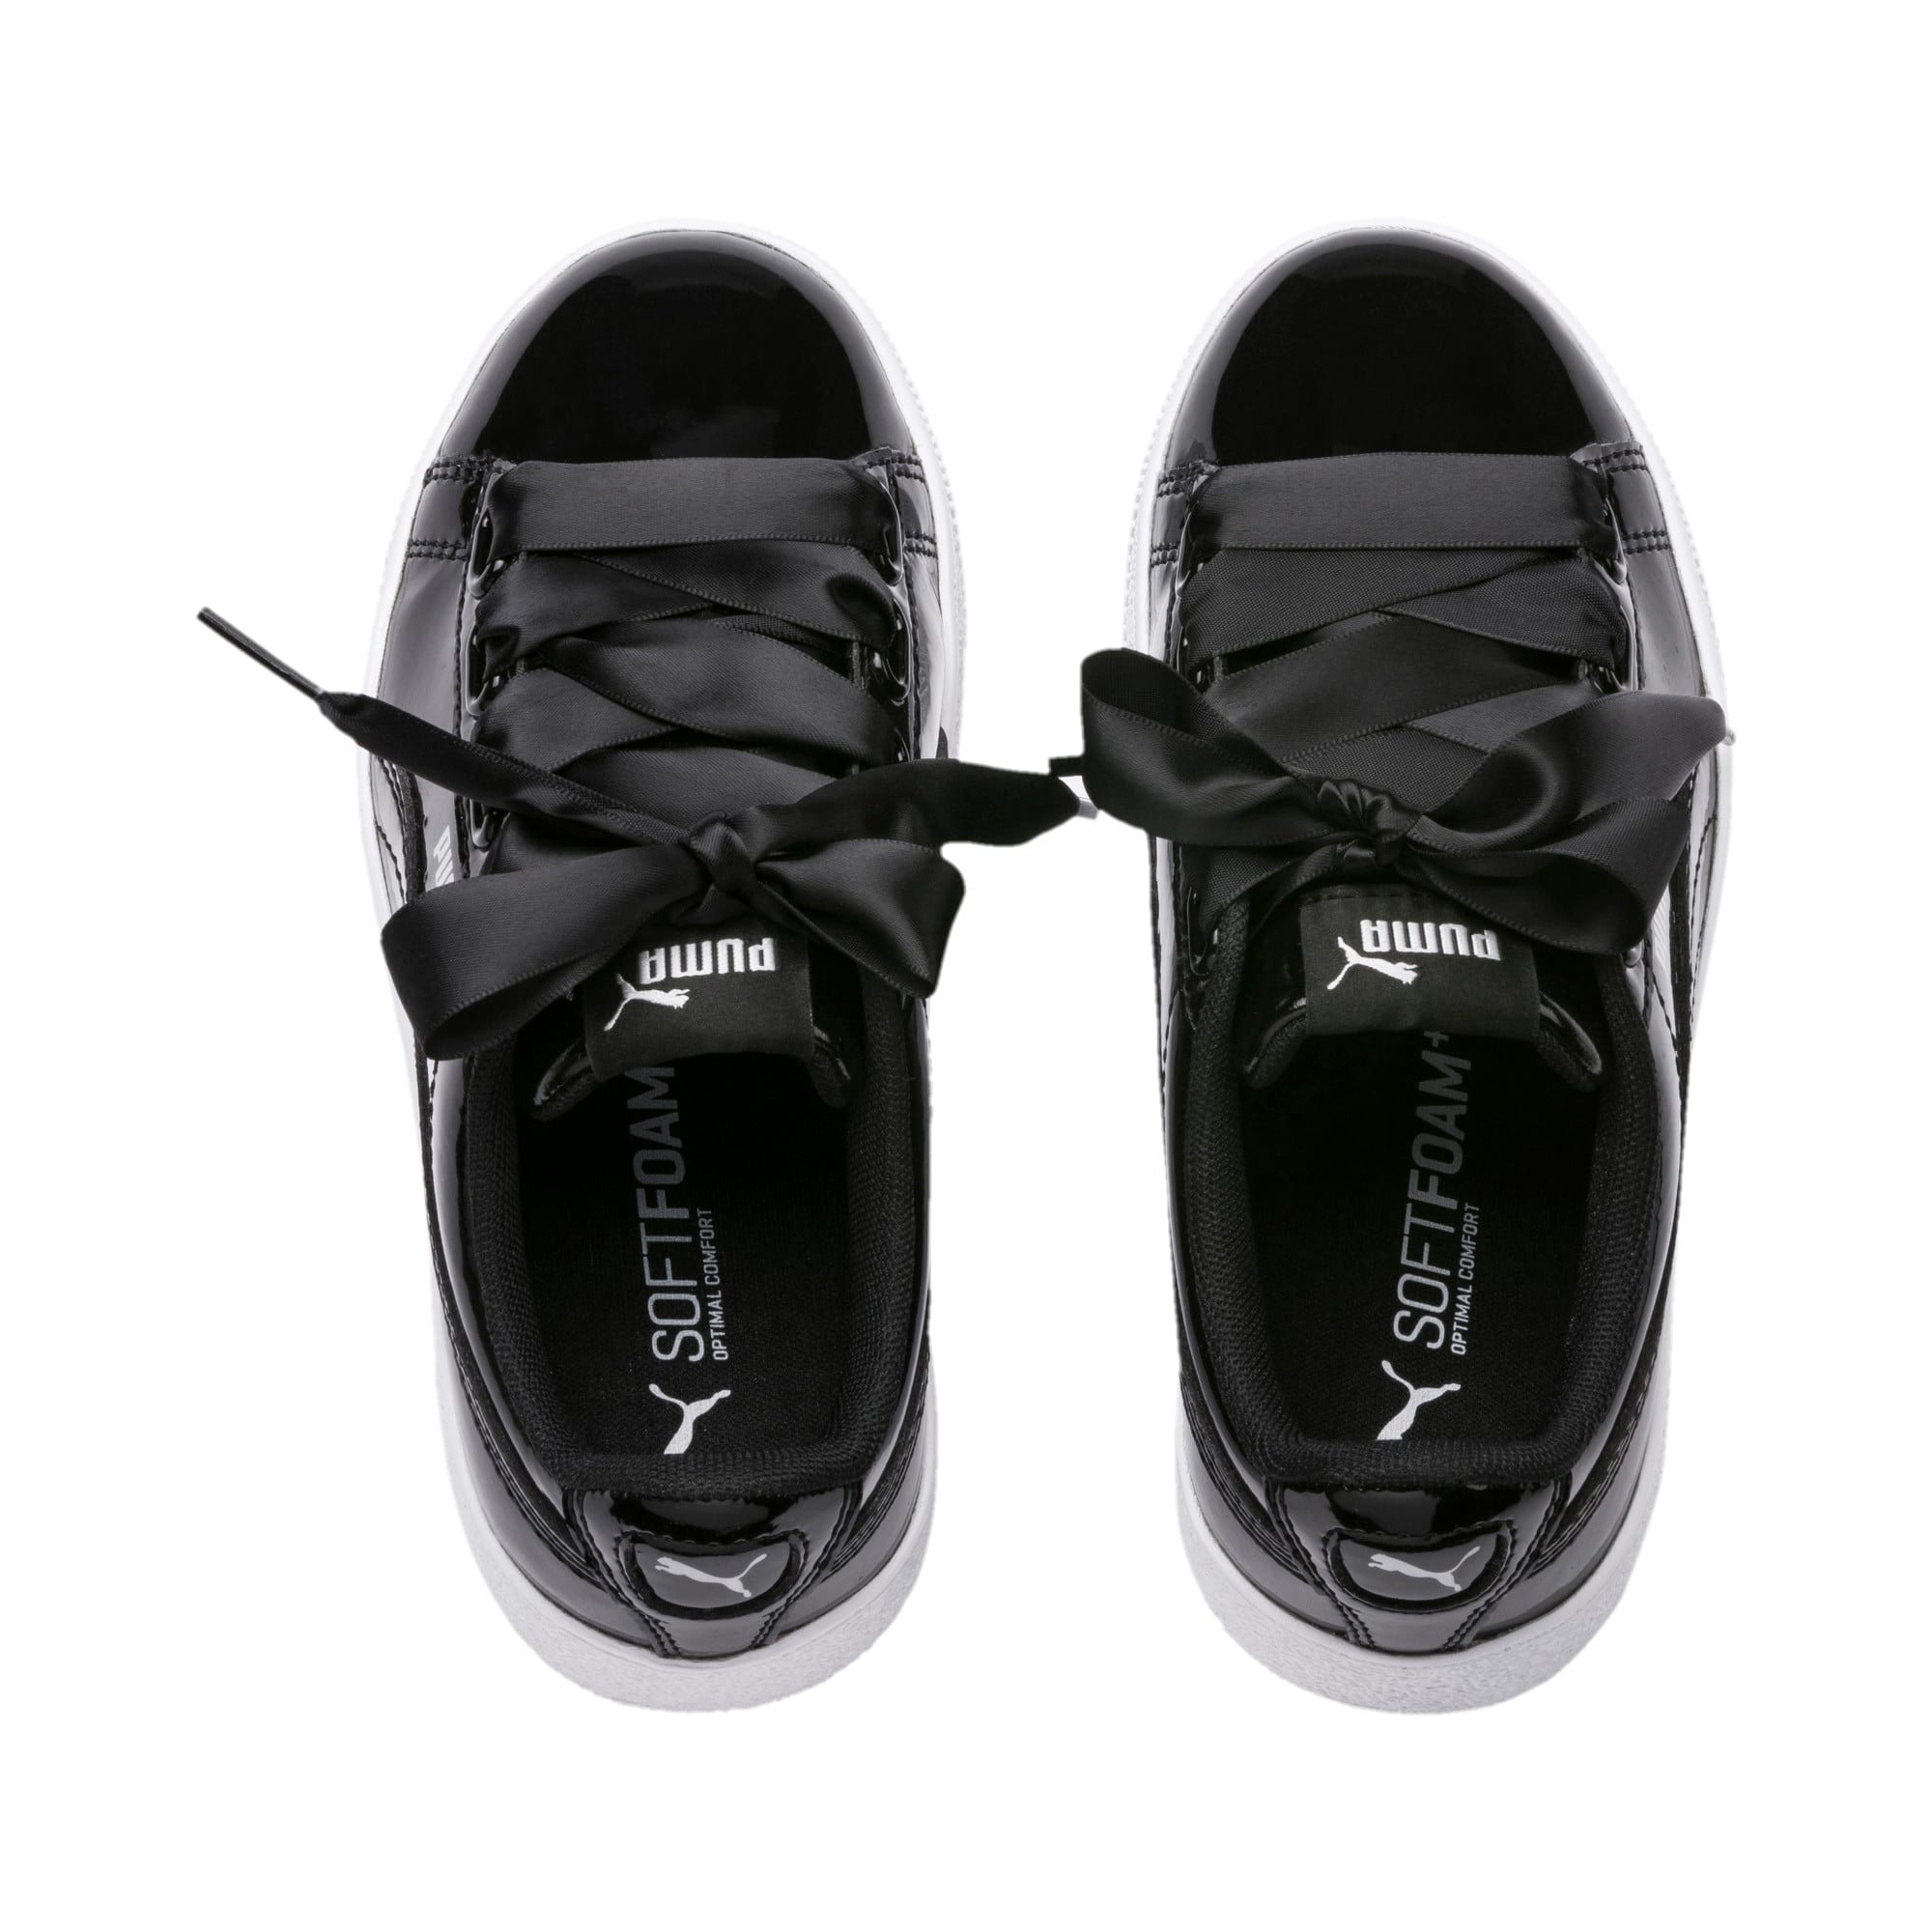 Thumbnail 6 of Vikky Platform Ribbon Patent Kids' Trainers, Puma Black-Puma Black, medium